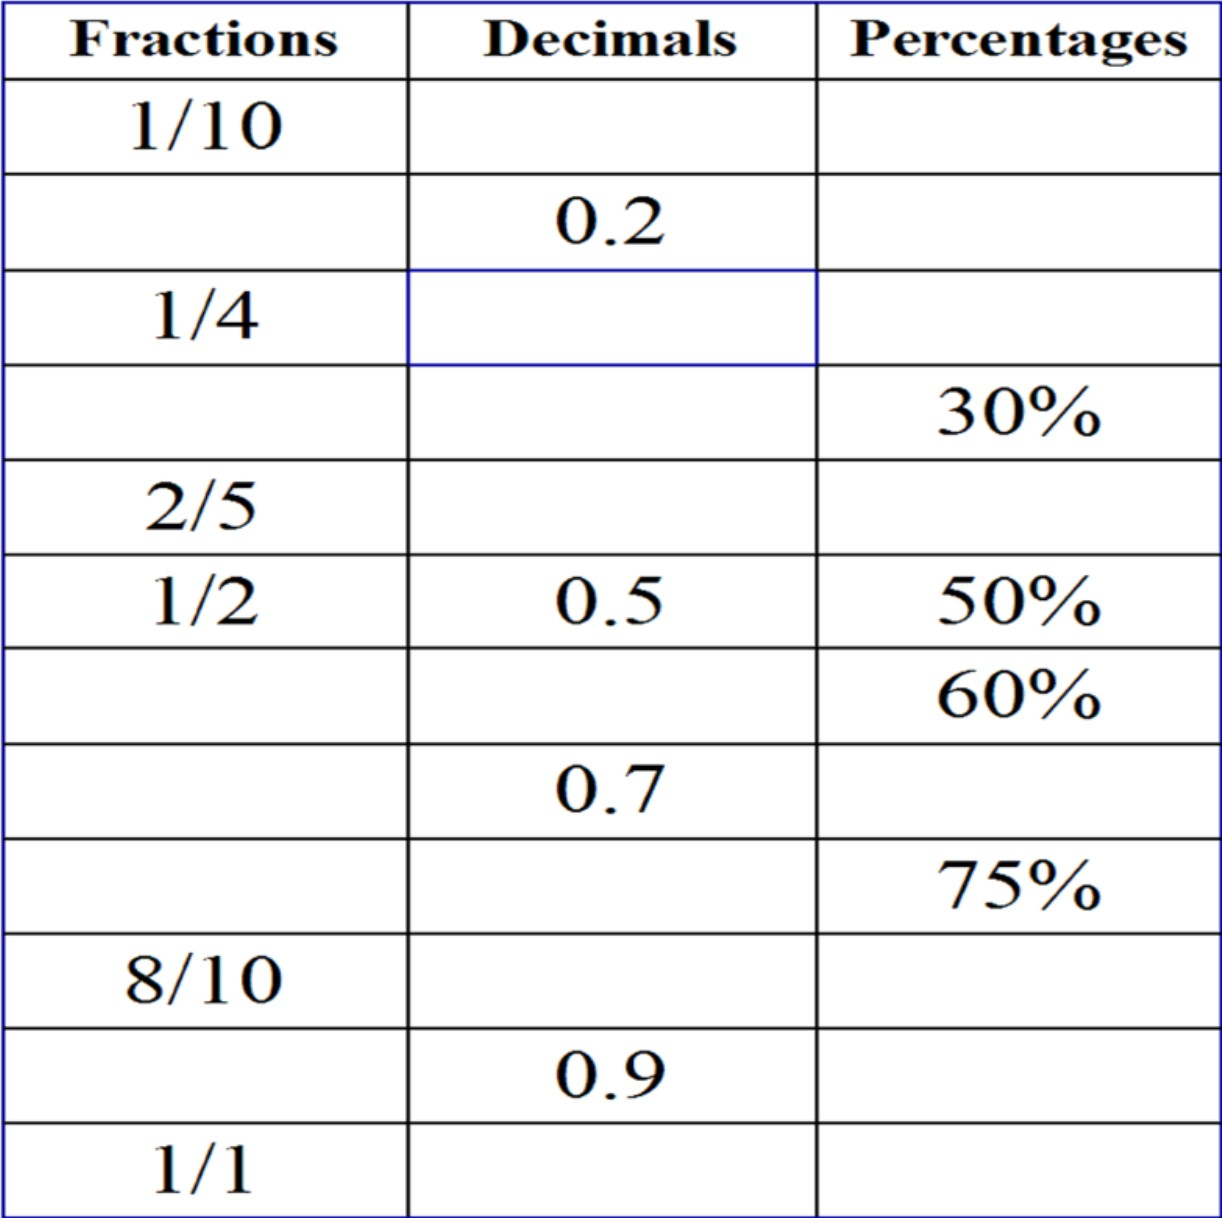 Maths This week in maths we have been working on converting fractions into decimals and percentages. Its been tough but we got through it quite comfortably in the end. We have also been working on converting fractions to an amount and making our own questions. -